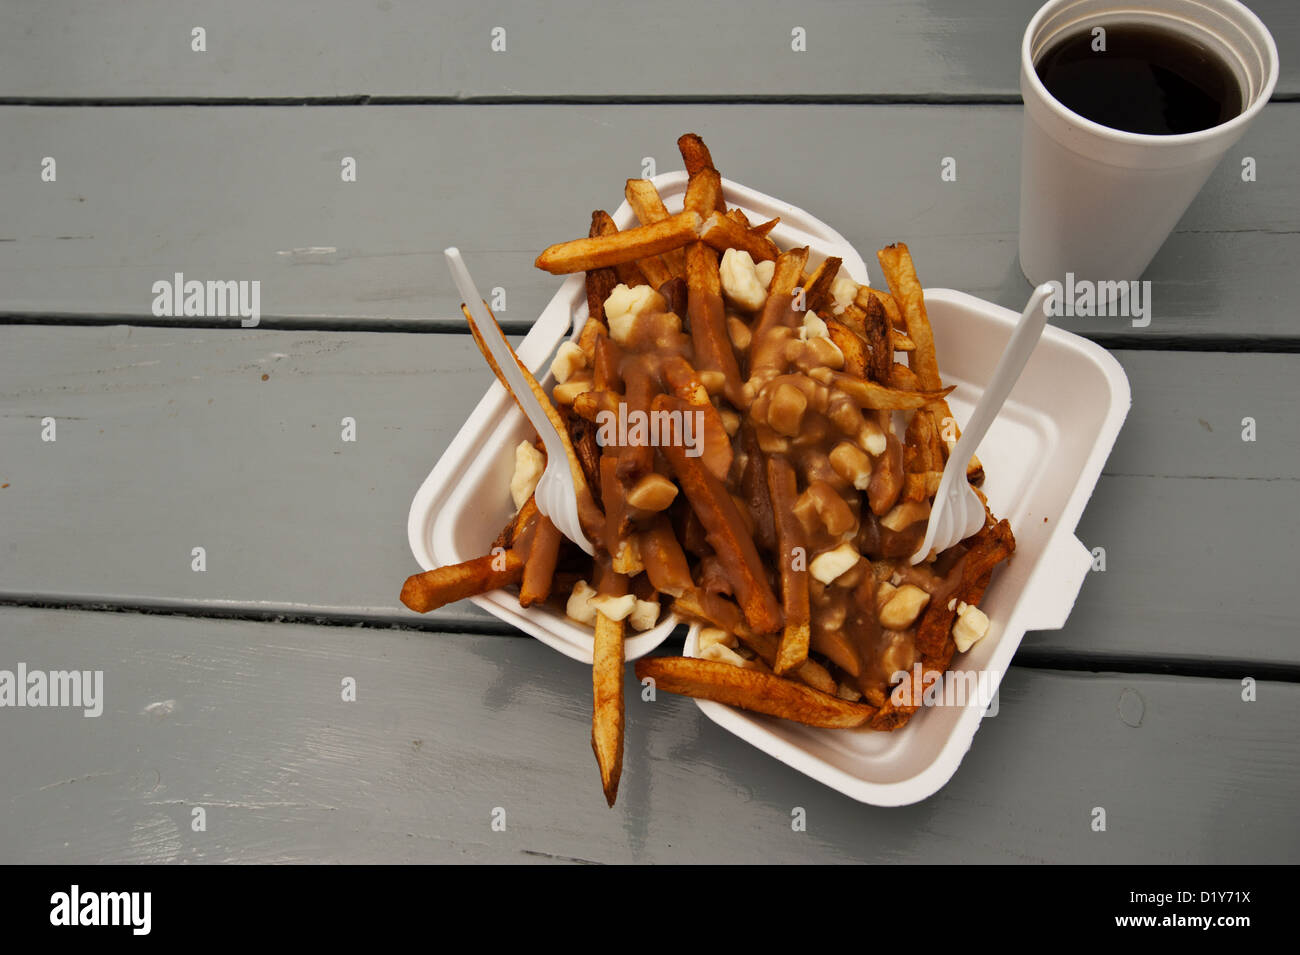 The traditional Canadian dish of poutine (French fried potatoes topped with gravy and cheese curds) served with - Stock Image